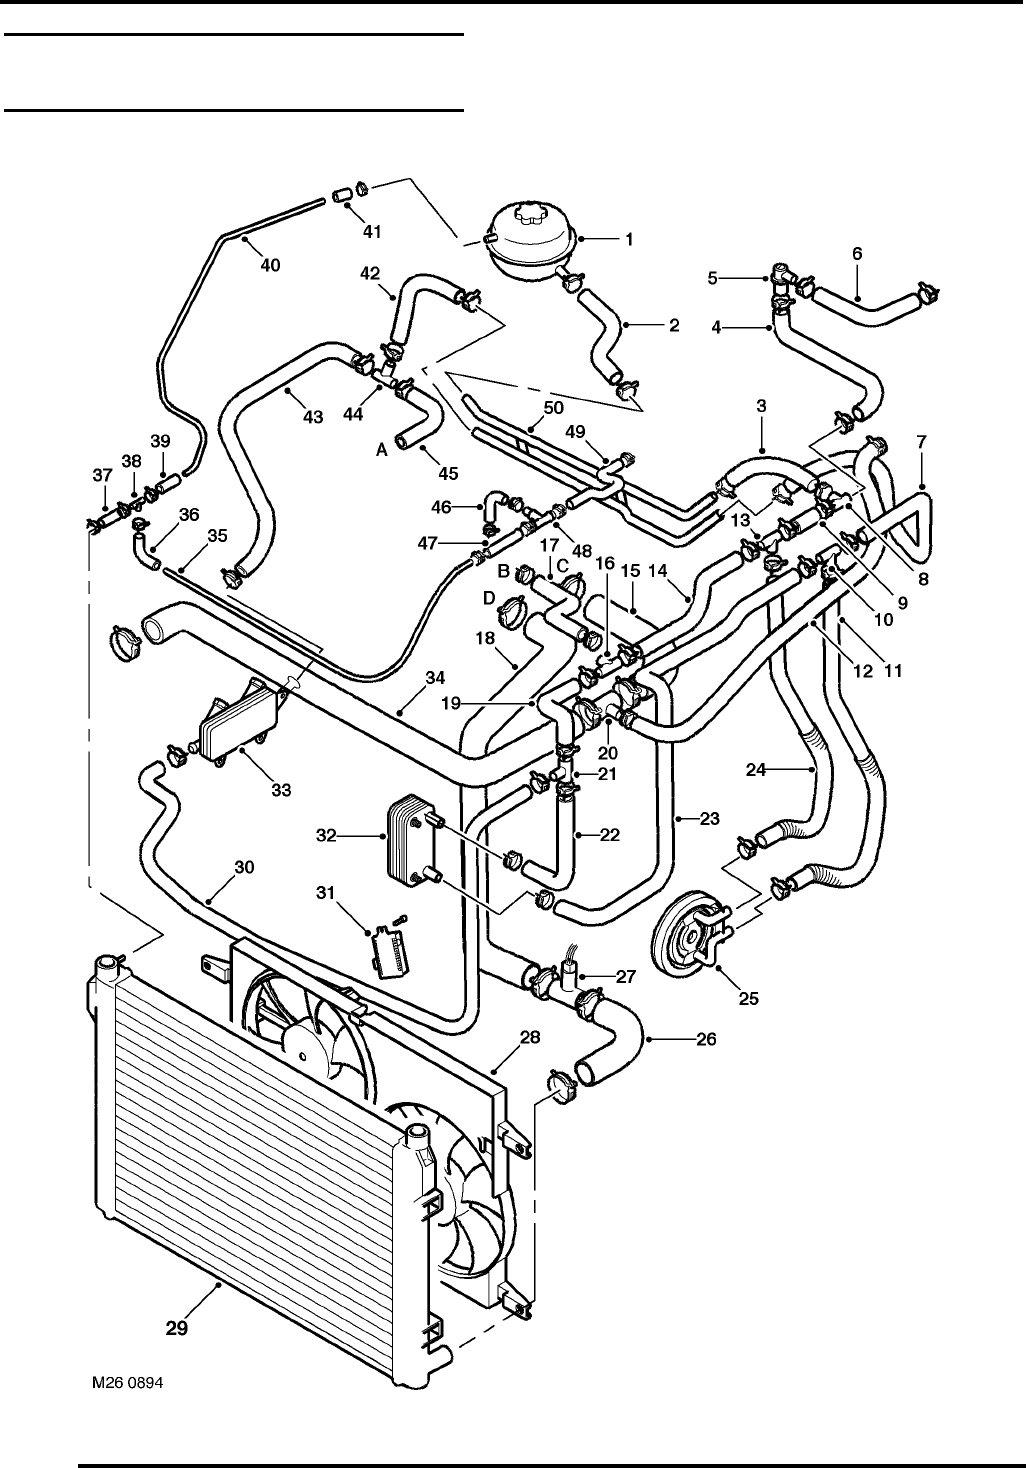 Freelander 2 5 Engine Diagram